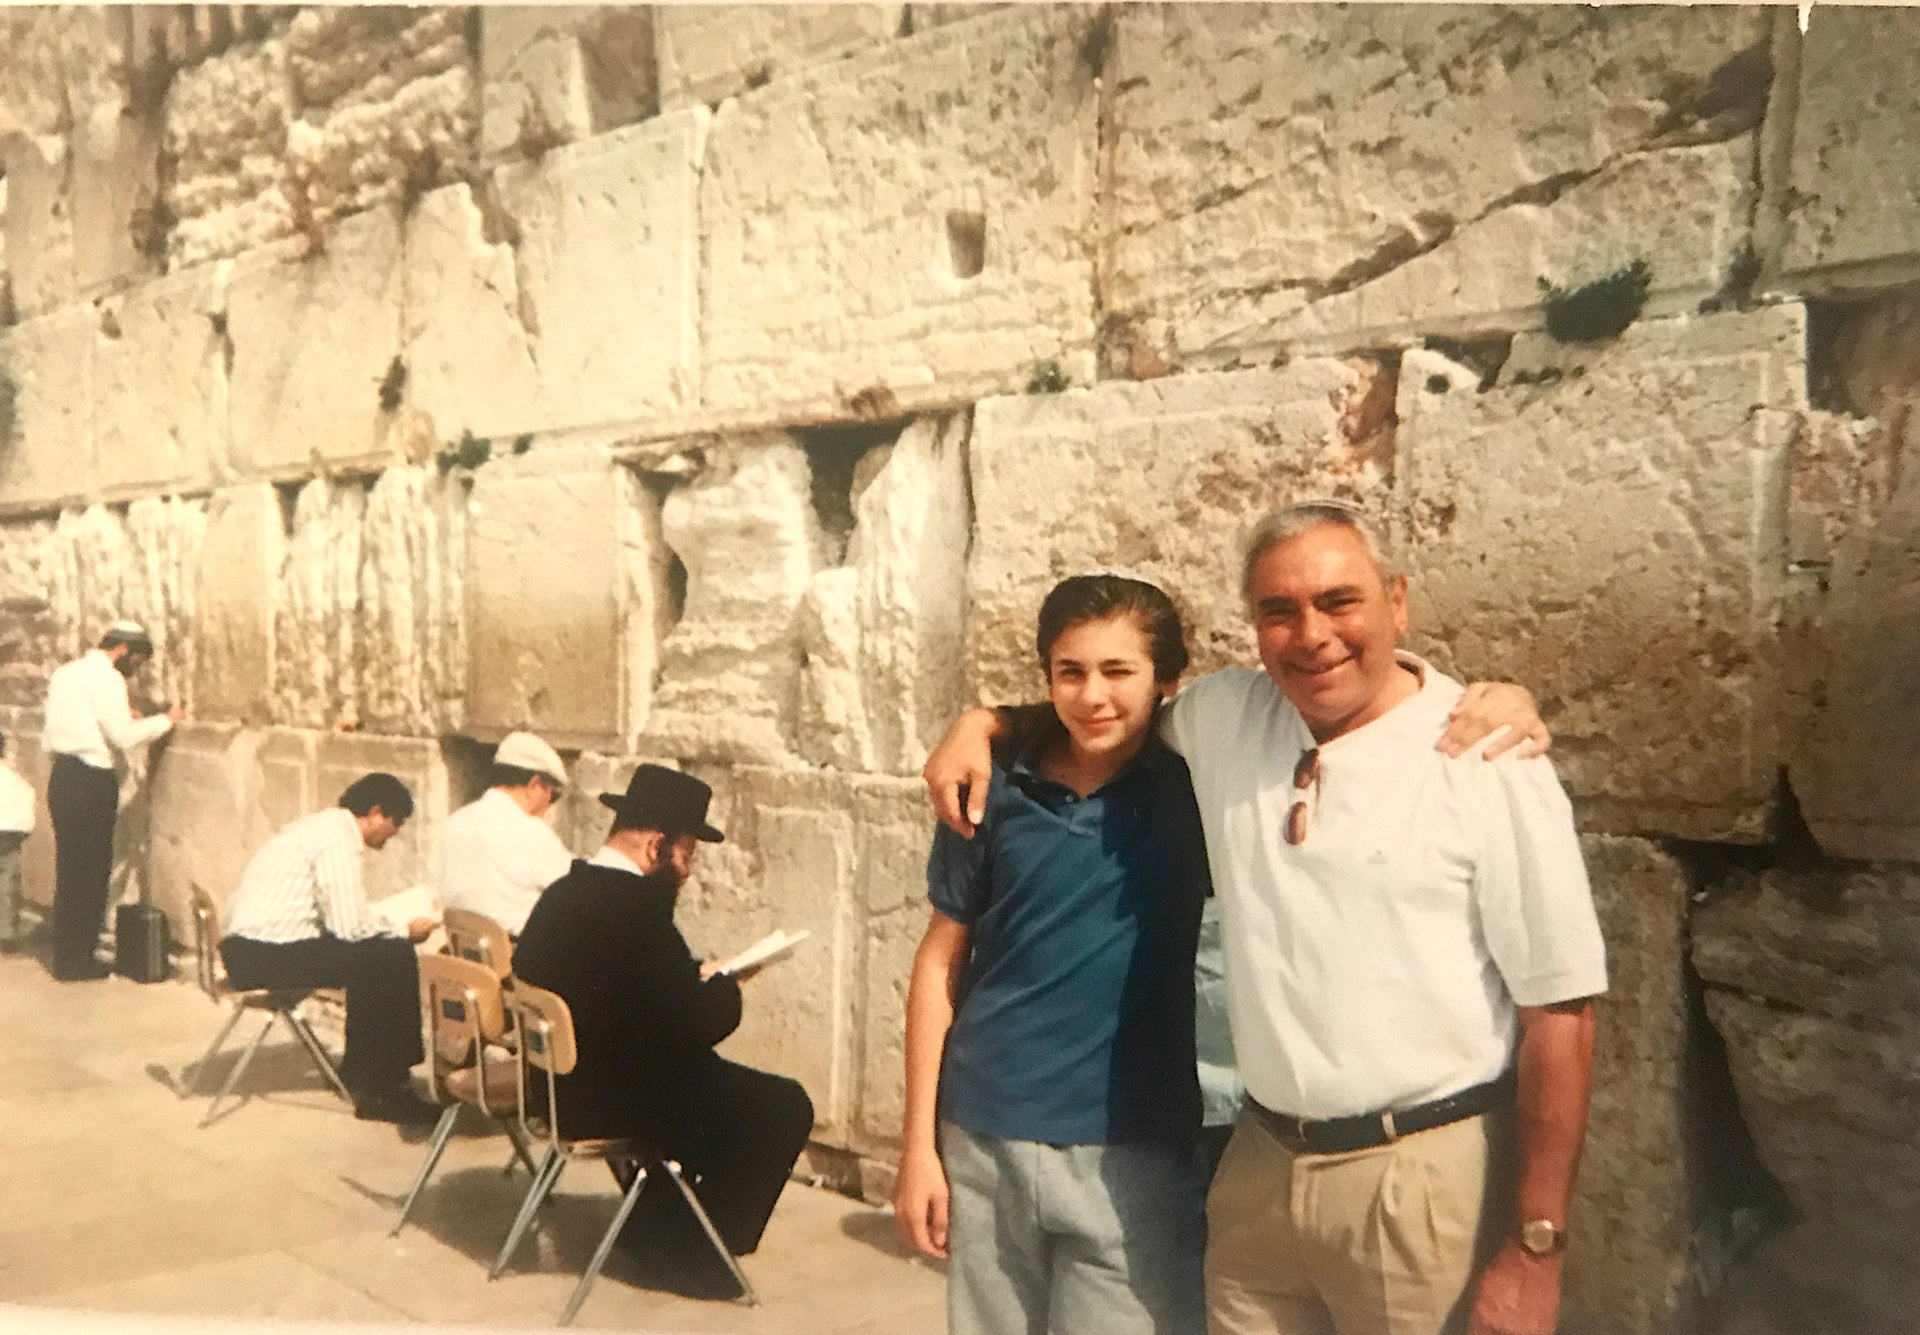 A young Greg Lansky at the Western Wall.